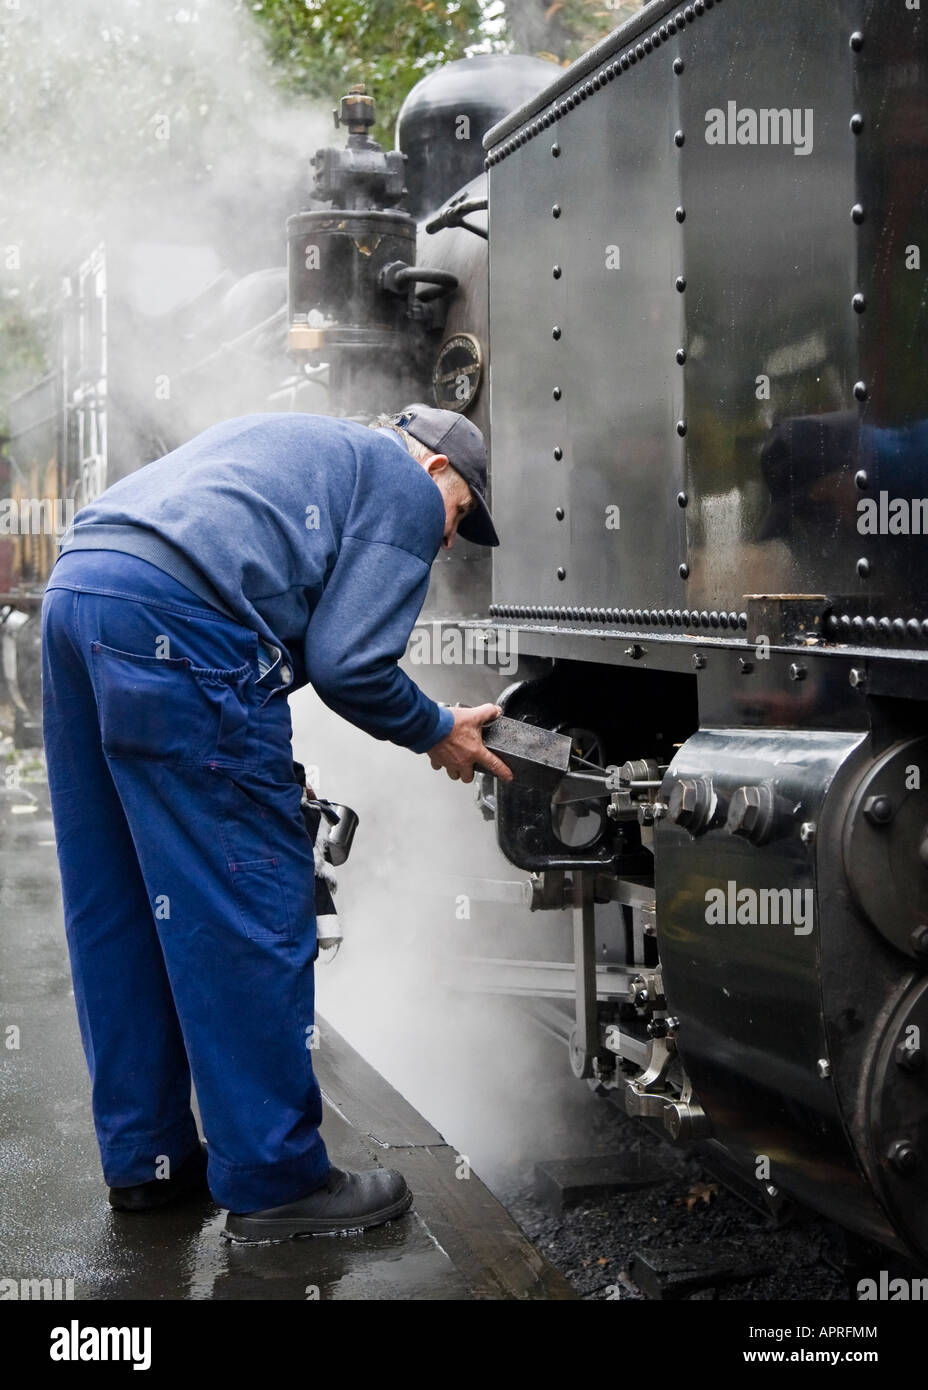 An elderly engineer in blue overalls oils the components on an old, black Victorian steam train, Melbourne, Australia - Stock Image